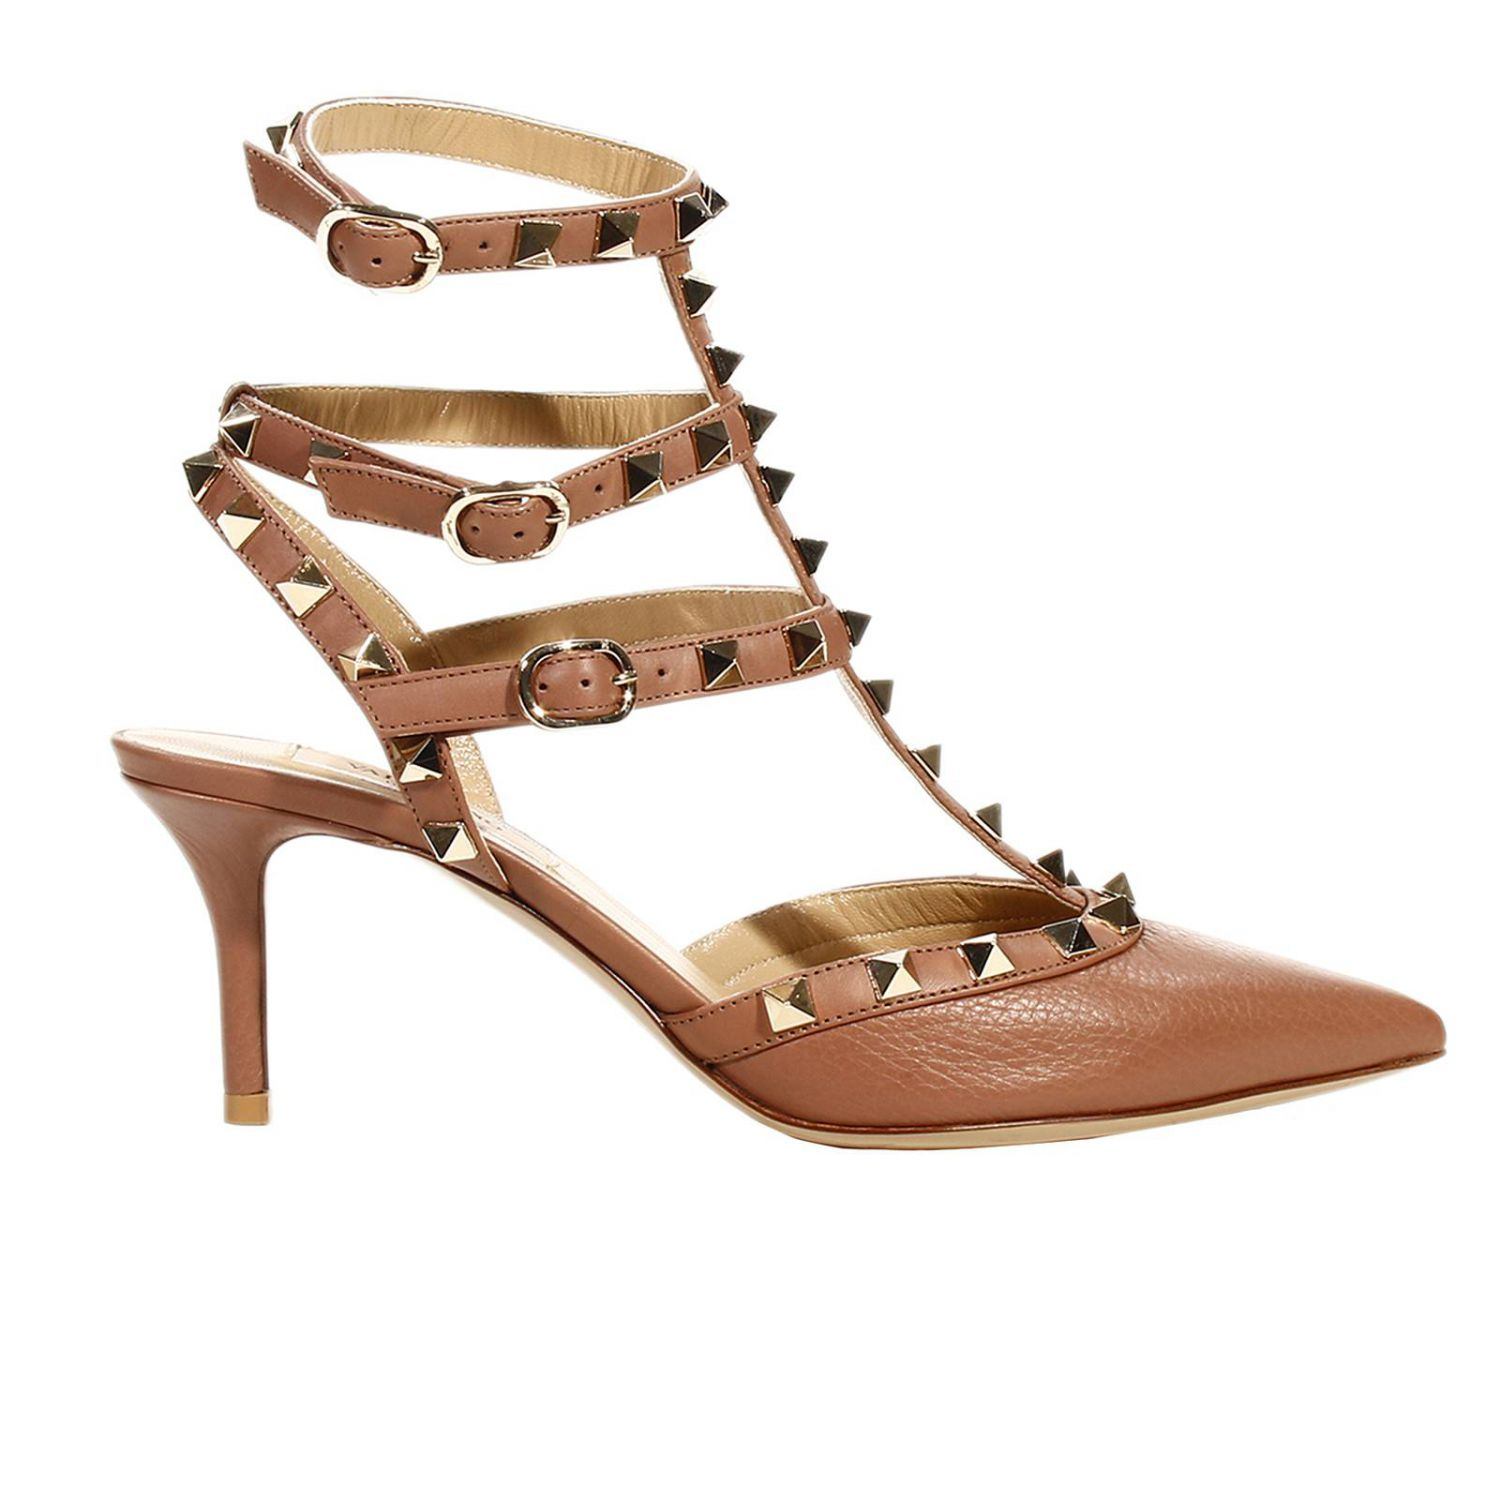 Valentino Shoes Heel 6 Rockstud Leather with Studs in ...